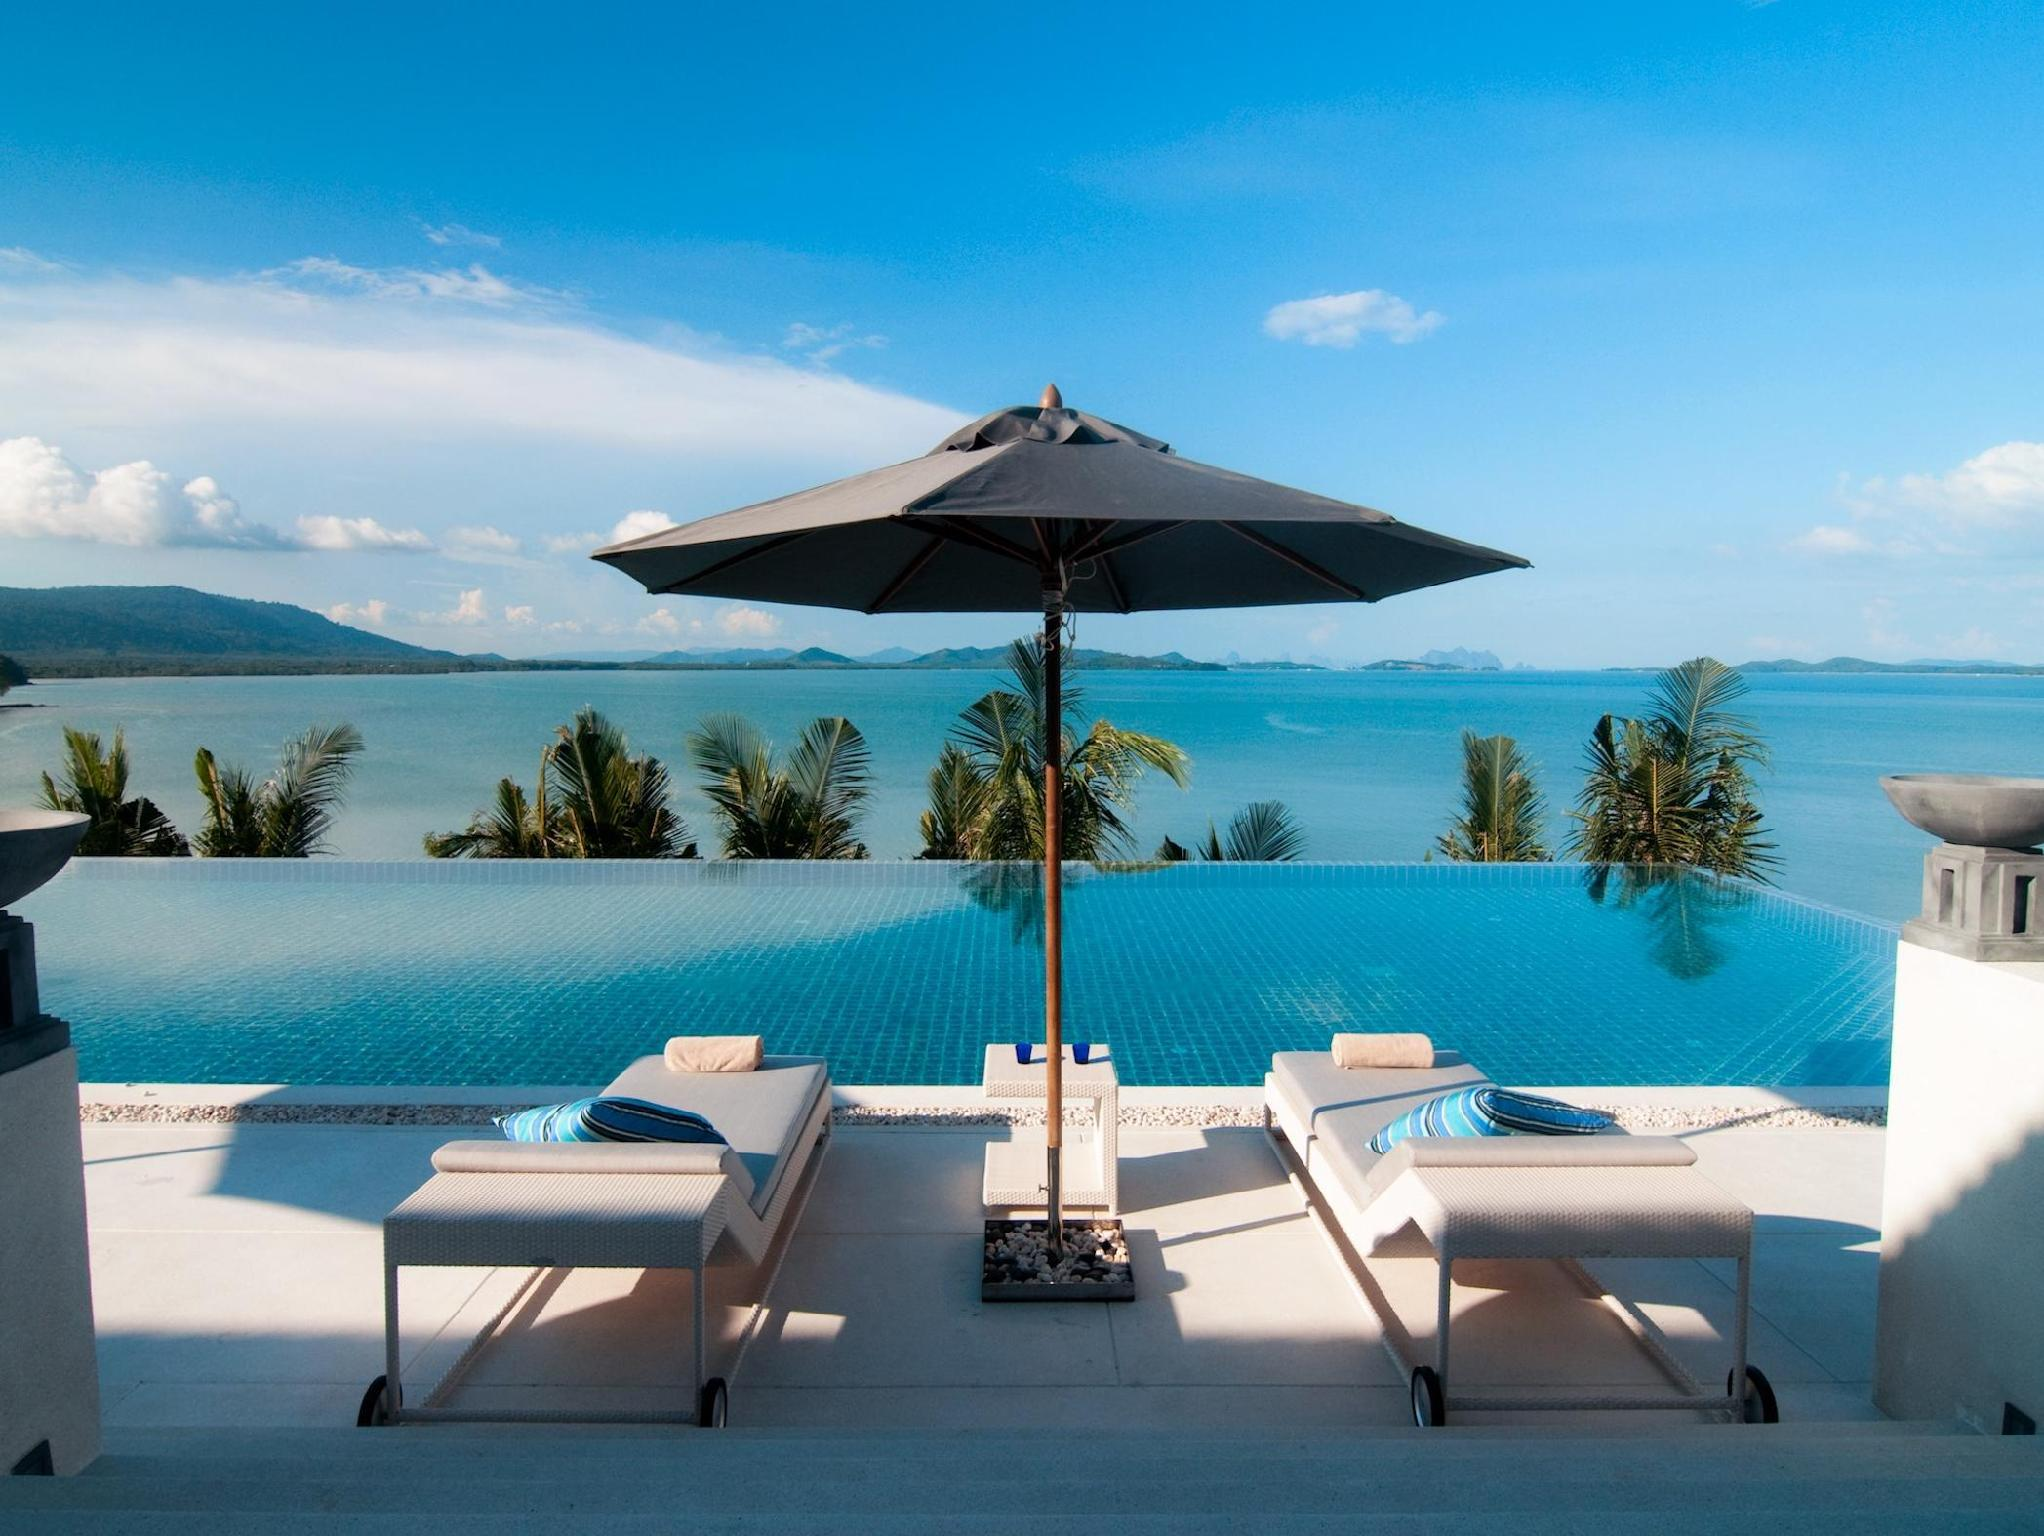 Ocean s 11 Villa - Hotels and Accommodation in Thailand, Asia